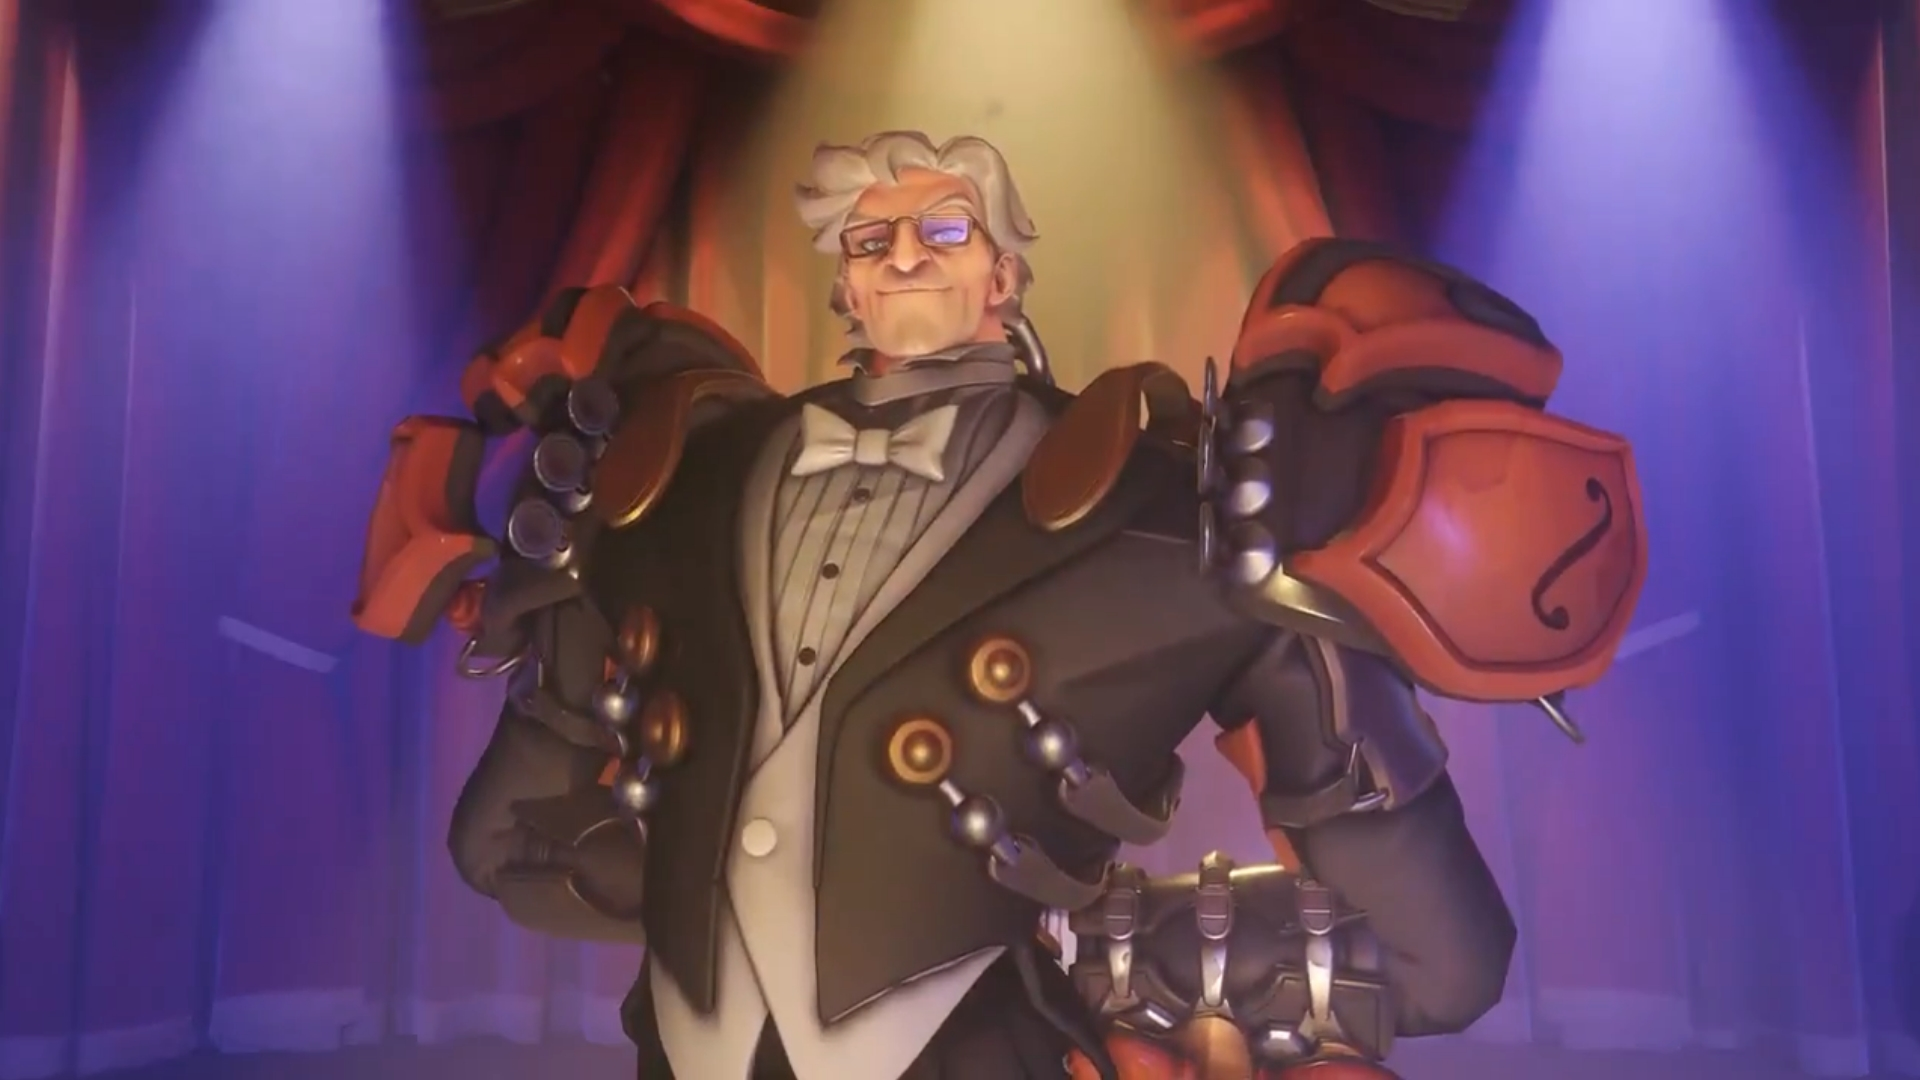 Overwatch reveals new Sigma skin challenge, new music collection - Dot Esports